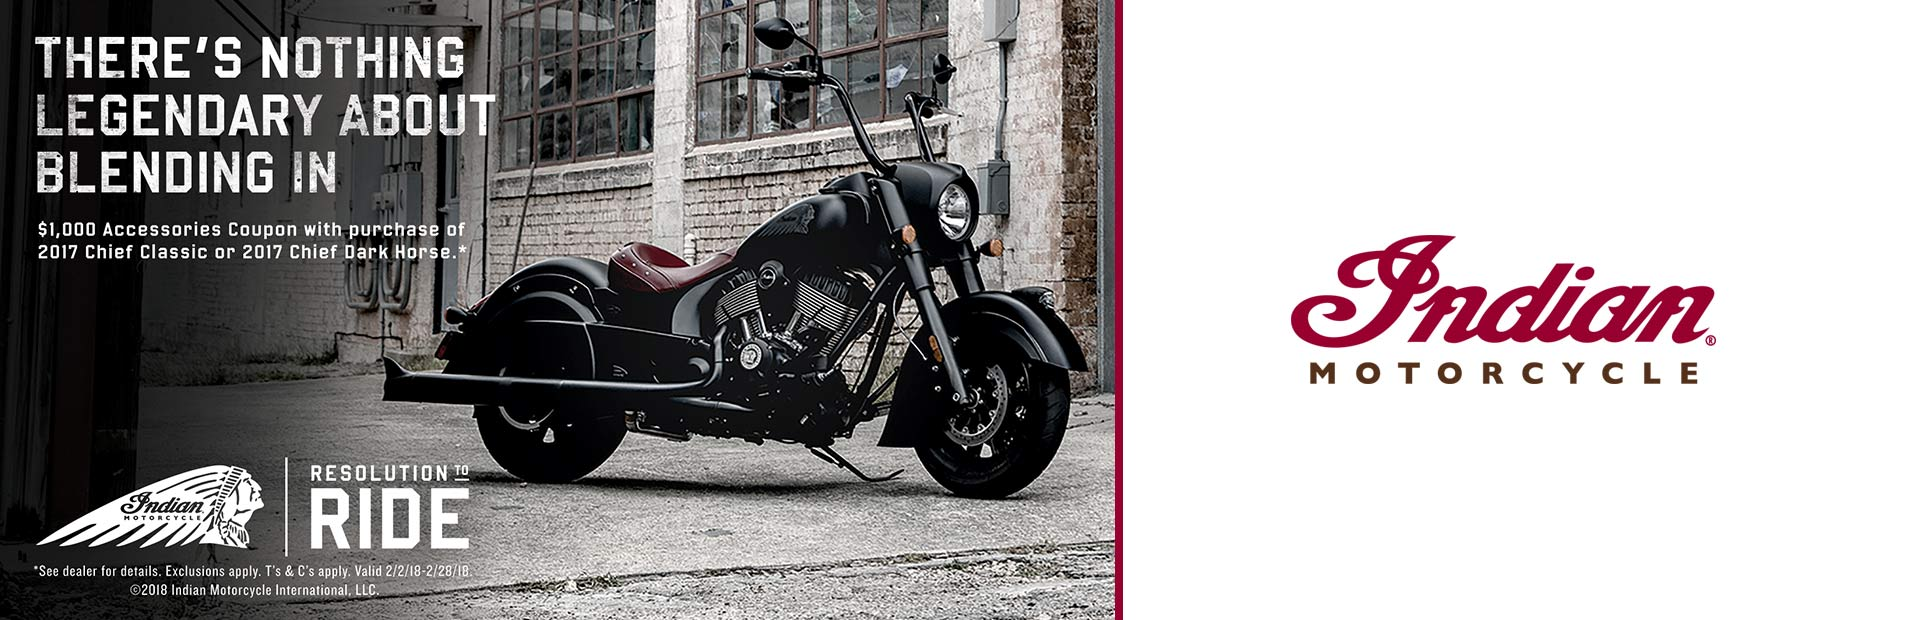 Indian Motorcycle: 2017 Chief Classic & Chief Dark Accessories Coupon